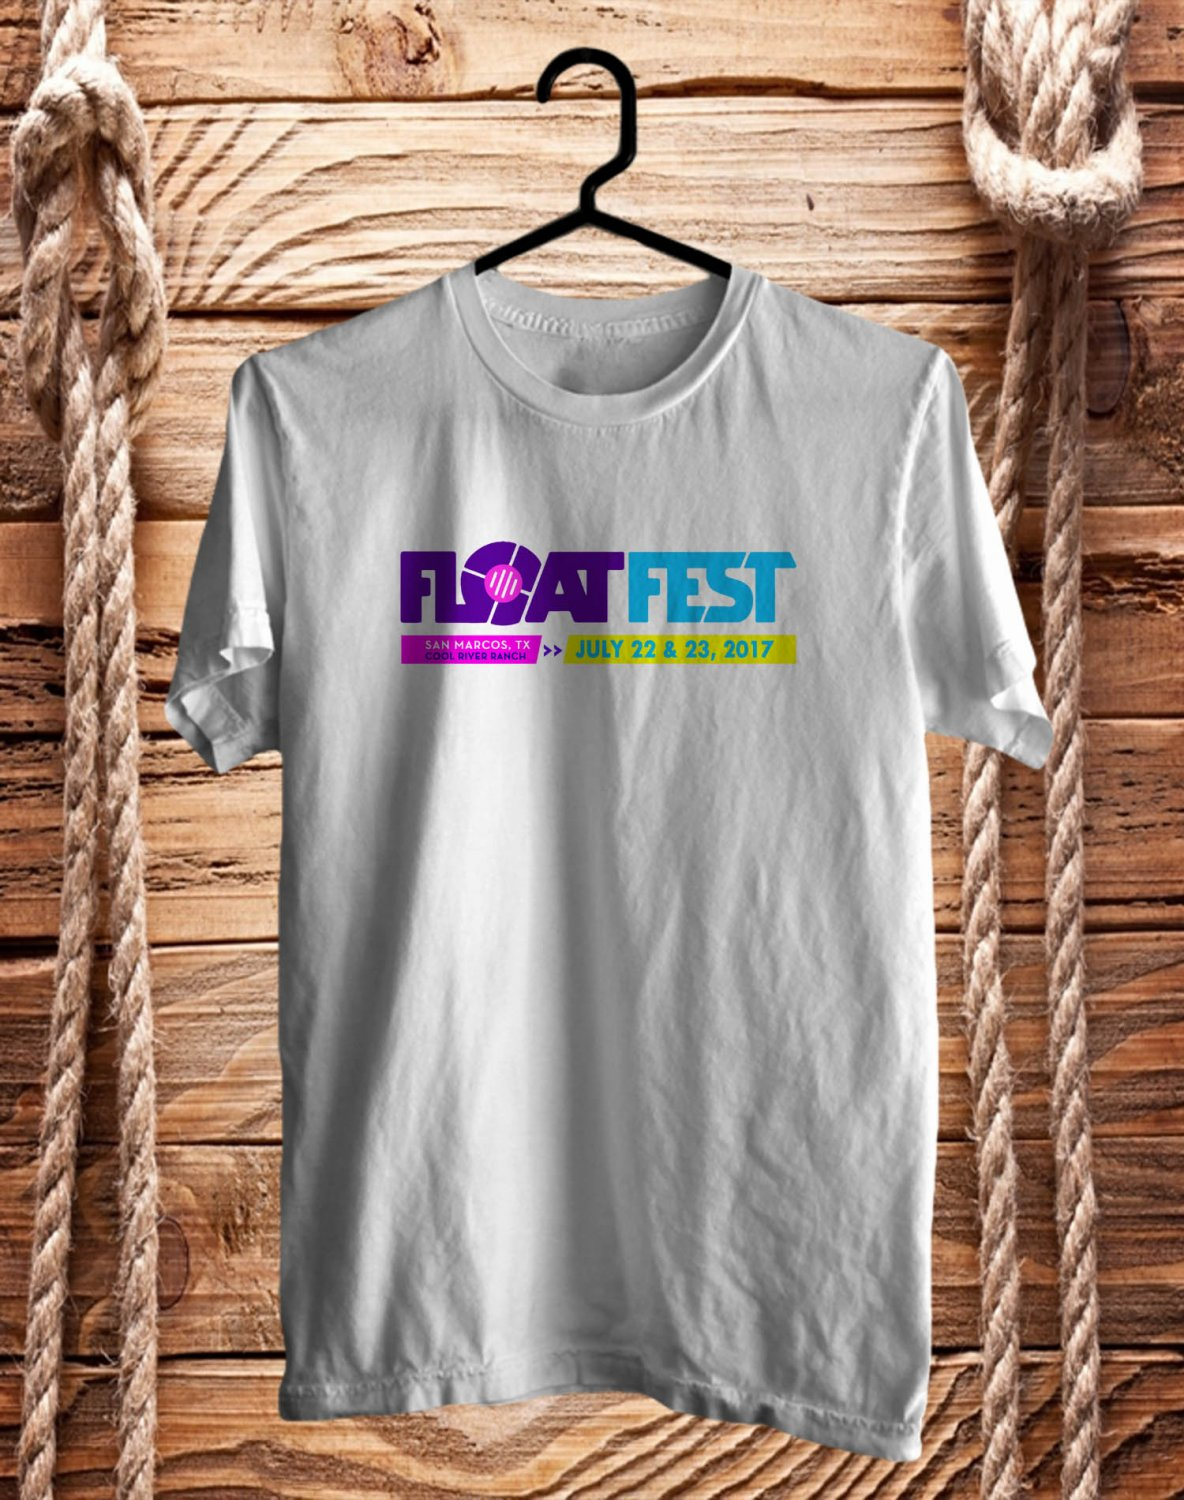 Float Fest July 2017 White Tee's Front Side by Complexart